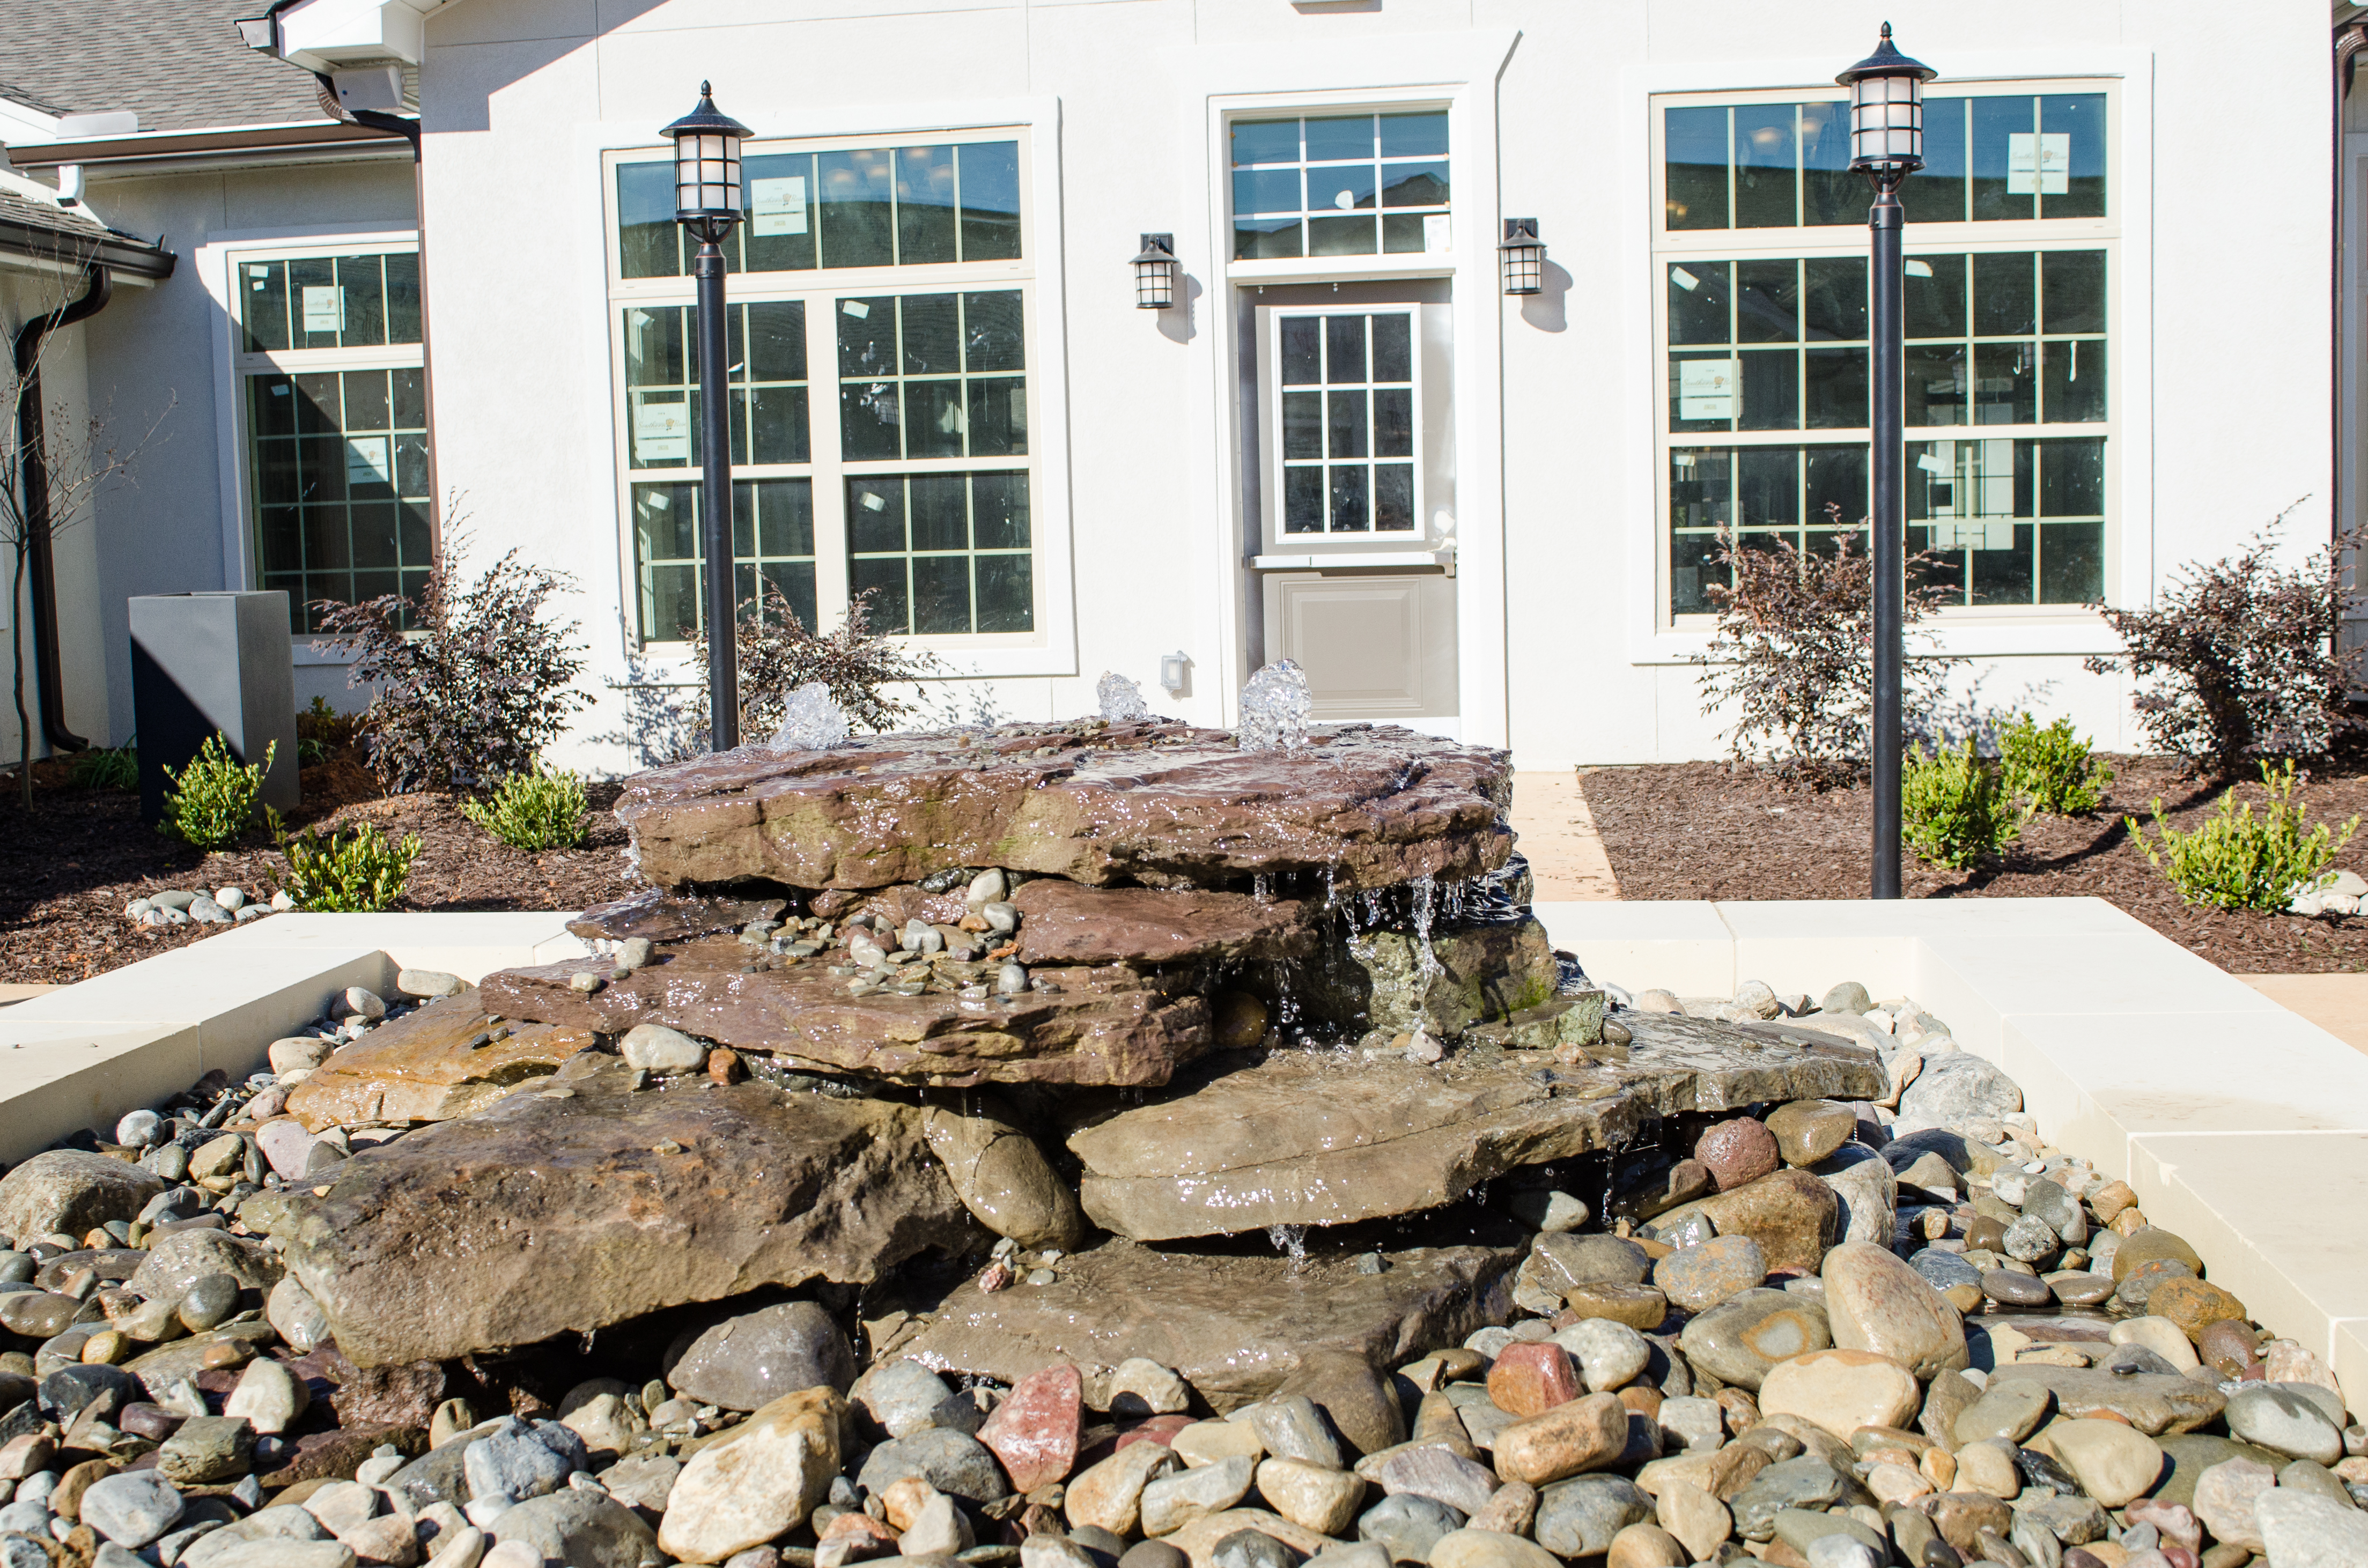 Admin landscaping lawn care and retaining walls for Commercial landscaping